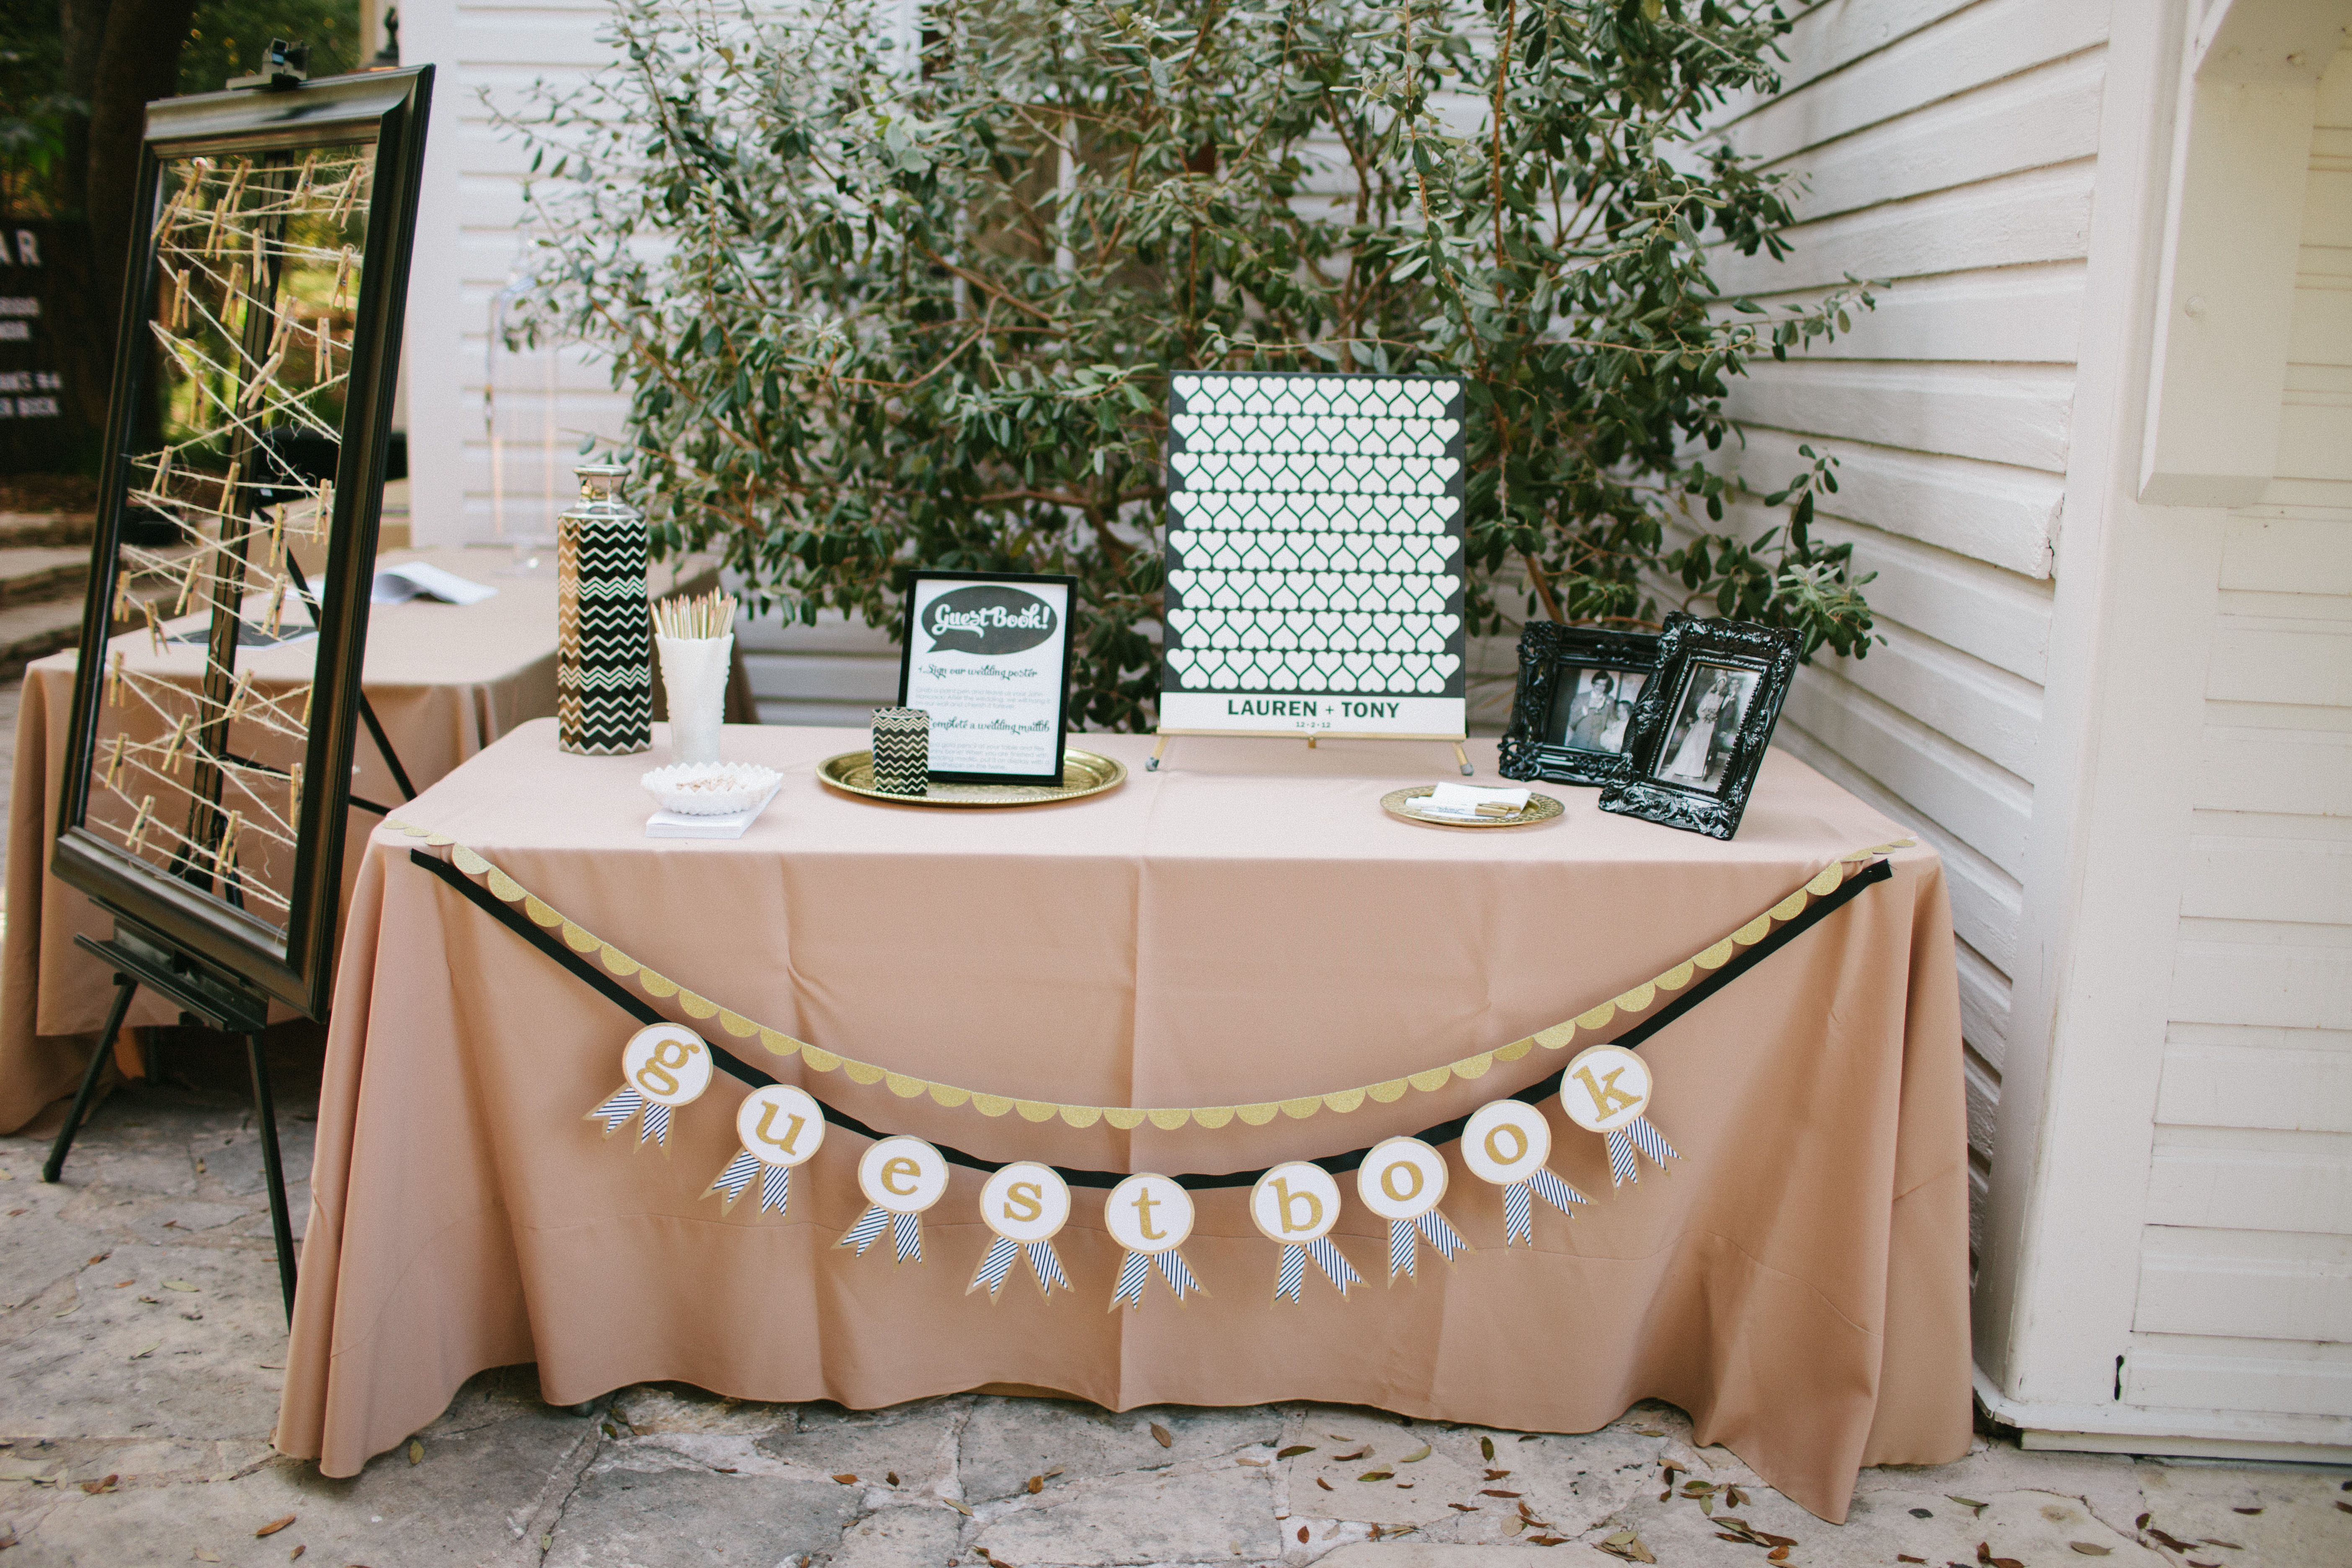 cute idea have a large frame with clothesline and have guests